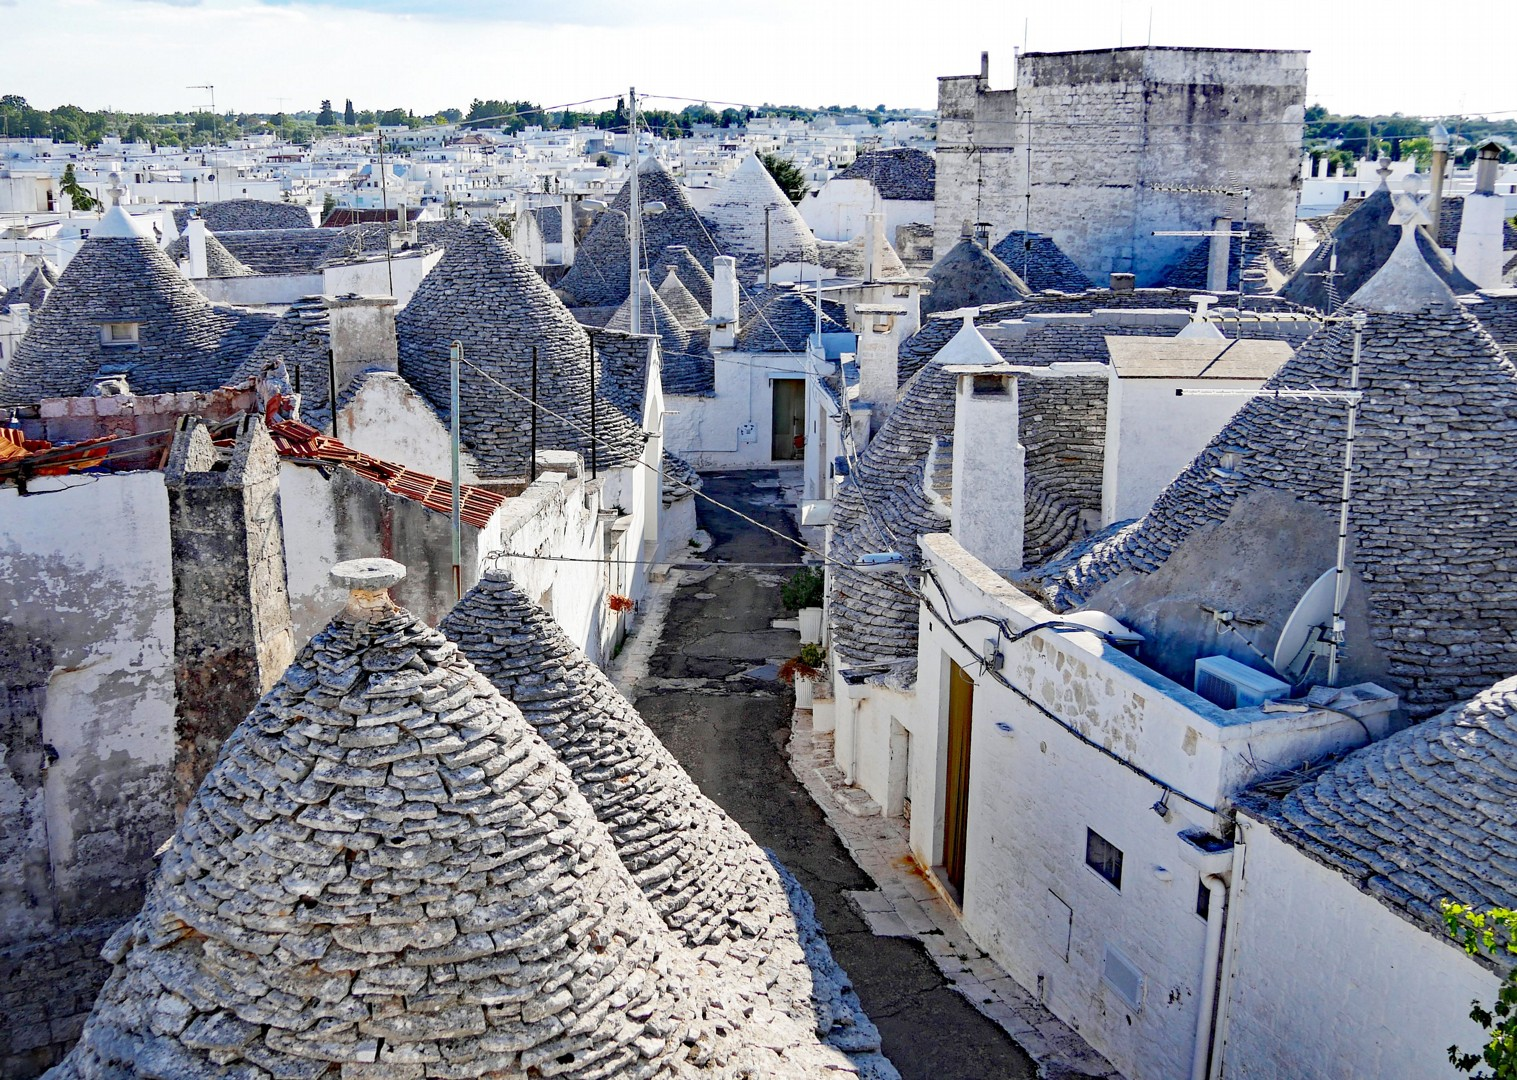 alberobello-rooftops-cycling-holiday-italy.jpg - Italy - Grand Traverse - North to South - Guided Road Cycling Holiday (17 days) - Italia Road Cycling